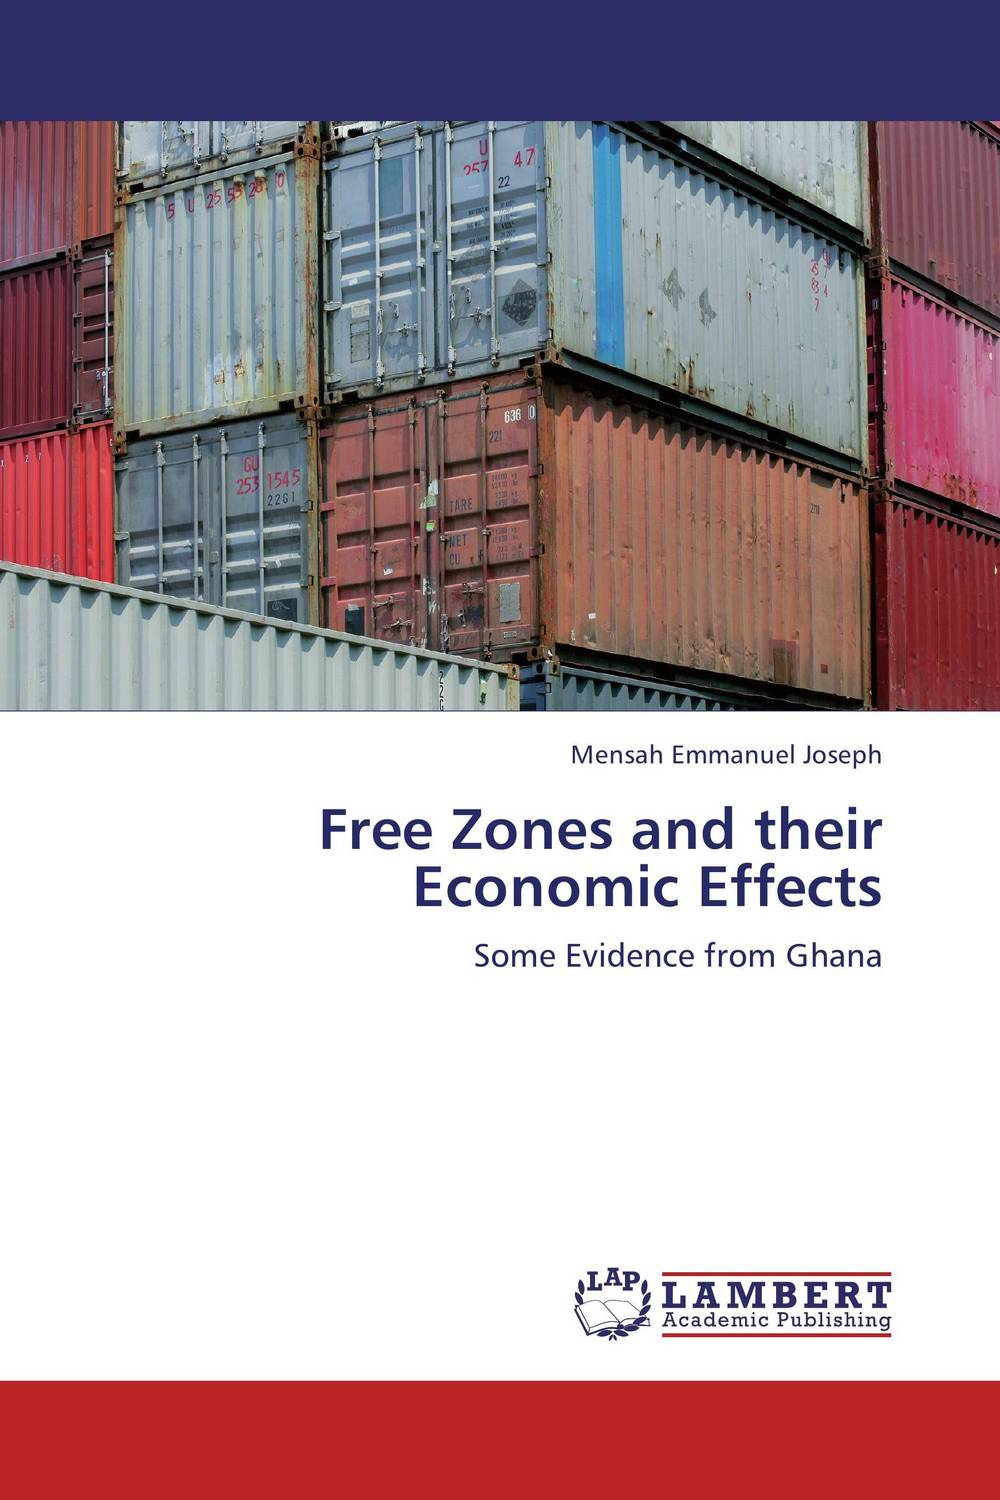 Free Zones and their Economic Effects